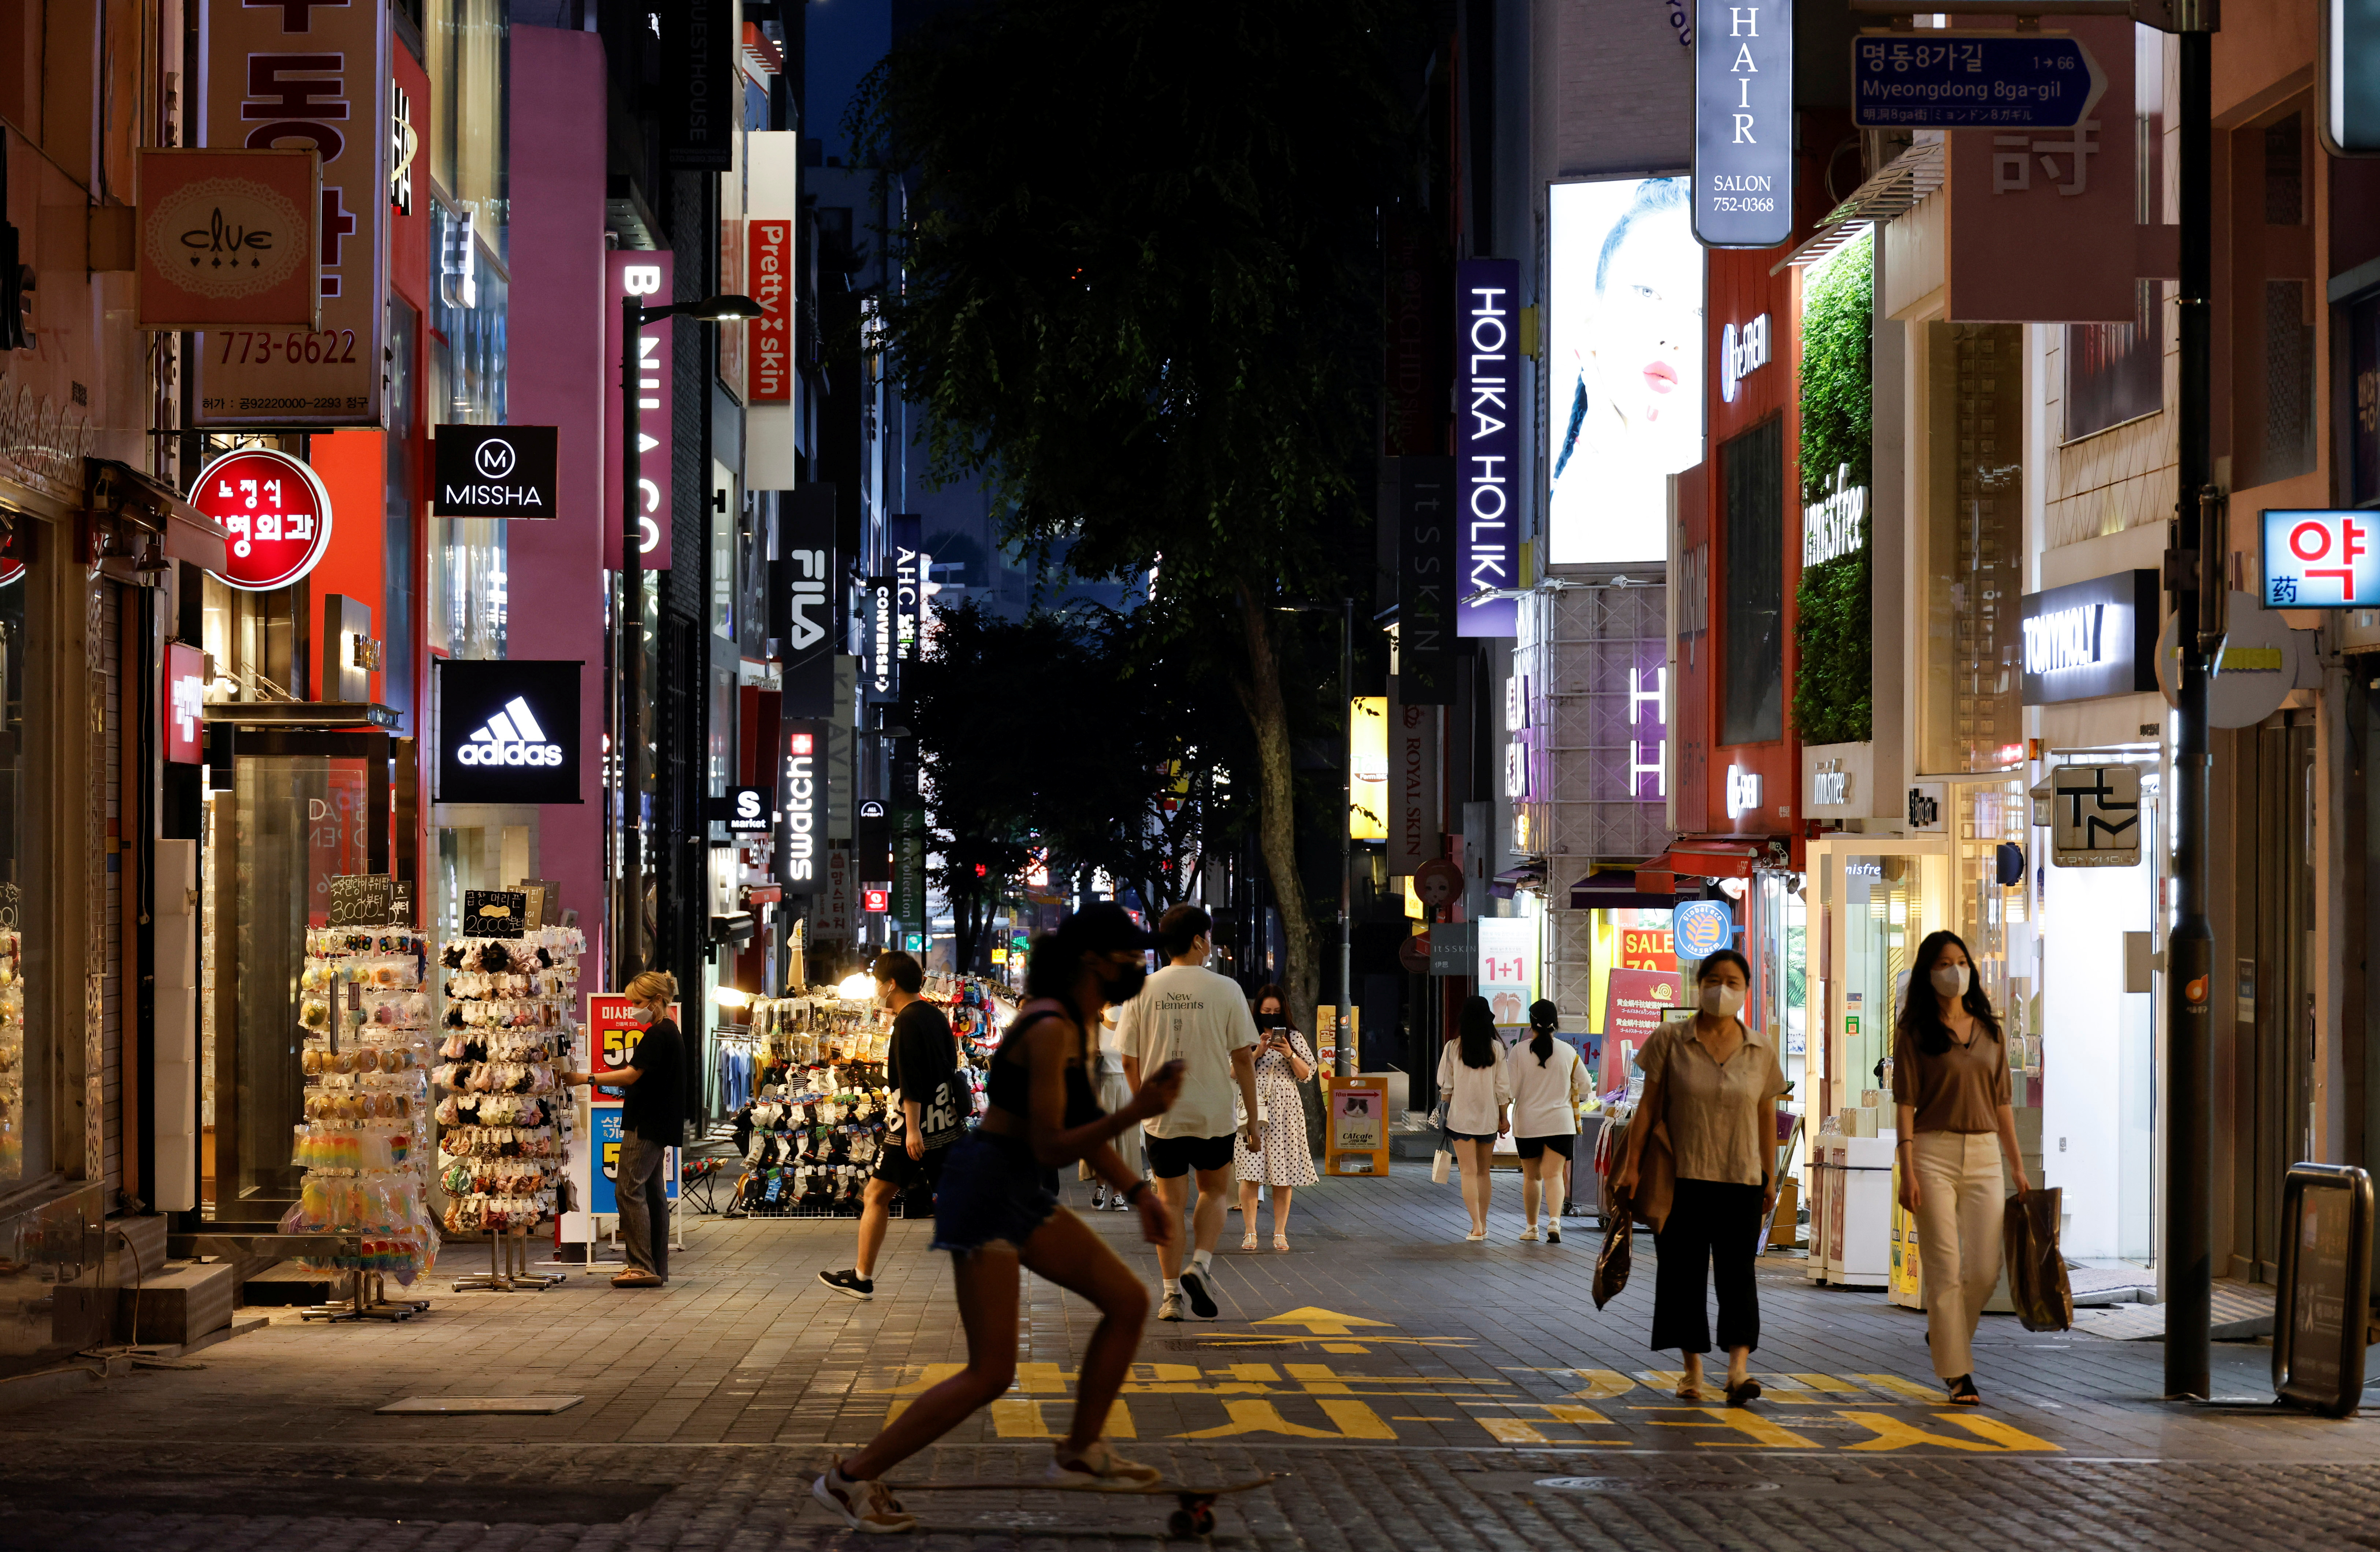 A woman skateboards on a shopping street amid tightened social distancing rules due to the coronavirus disease (COVID-19) pandemic in Seoul, South Korea, July 12, 2021.  REUTERS/Heo Ran